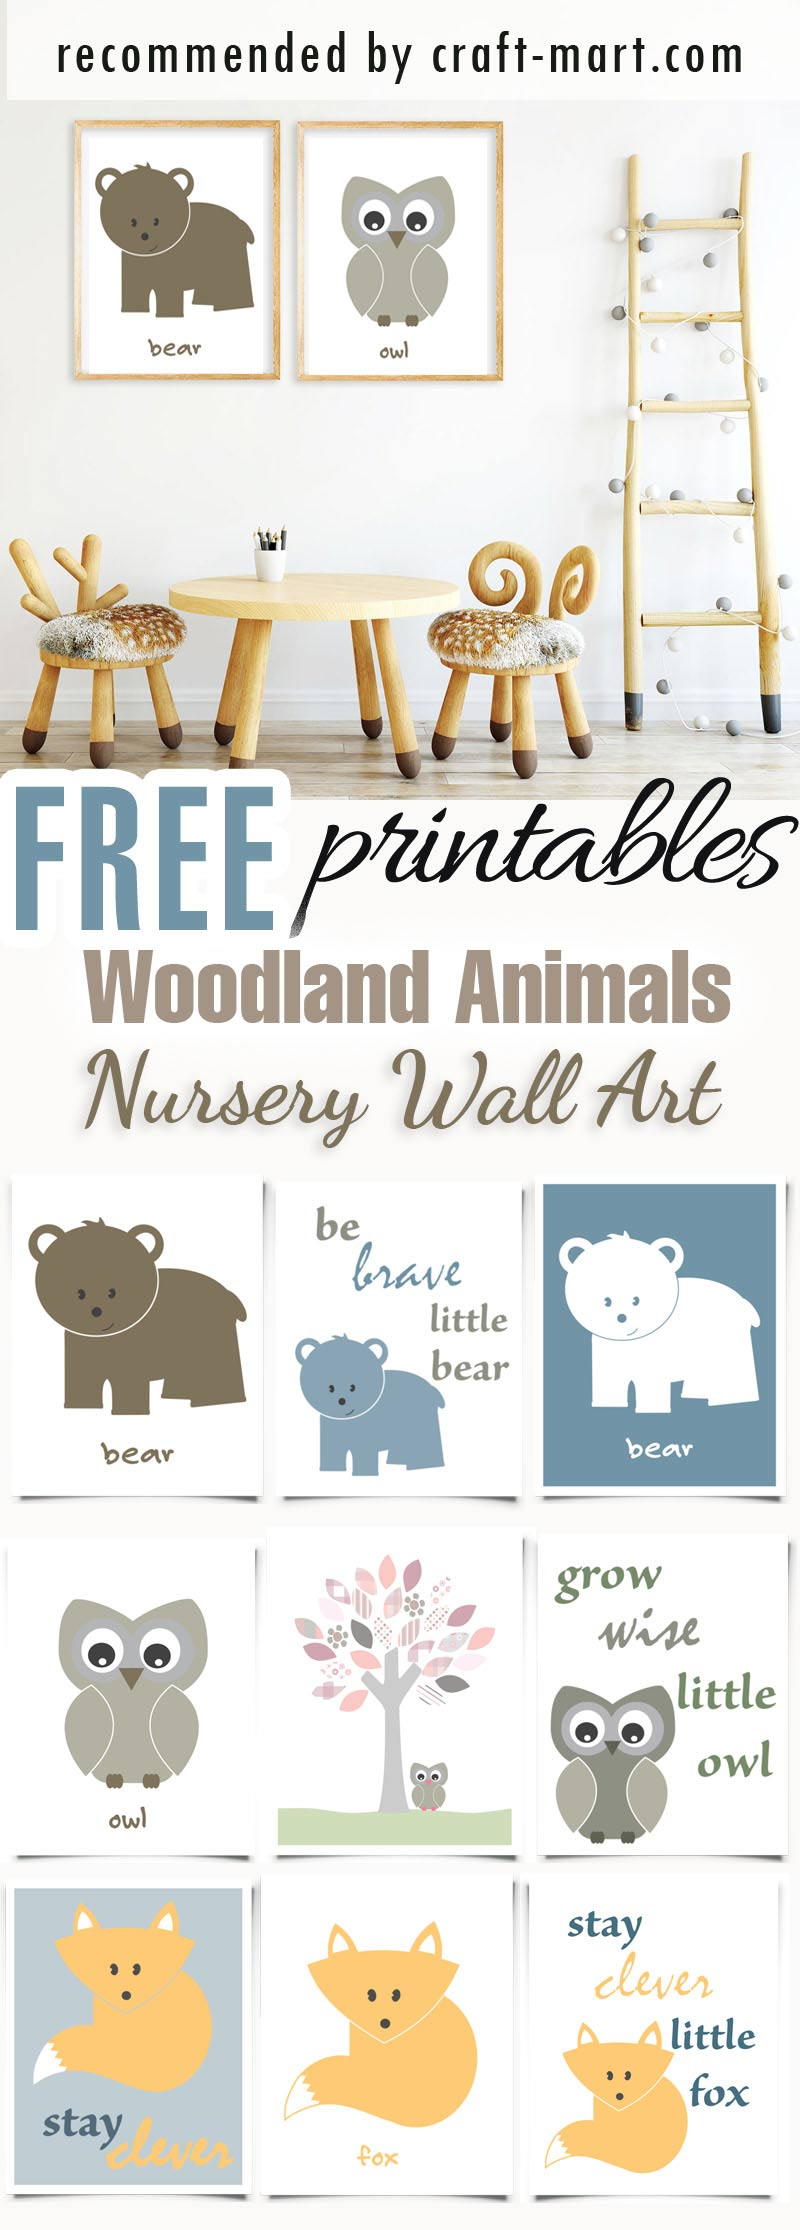 graphic regarding Free Printable Nursery Art identified as 100+ Easiest Totally free Nursery Printables and Wall Artwork - Craft-Mart